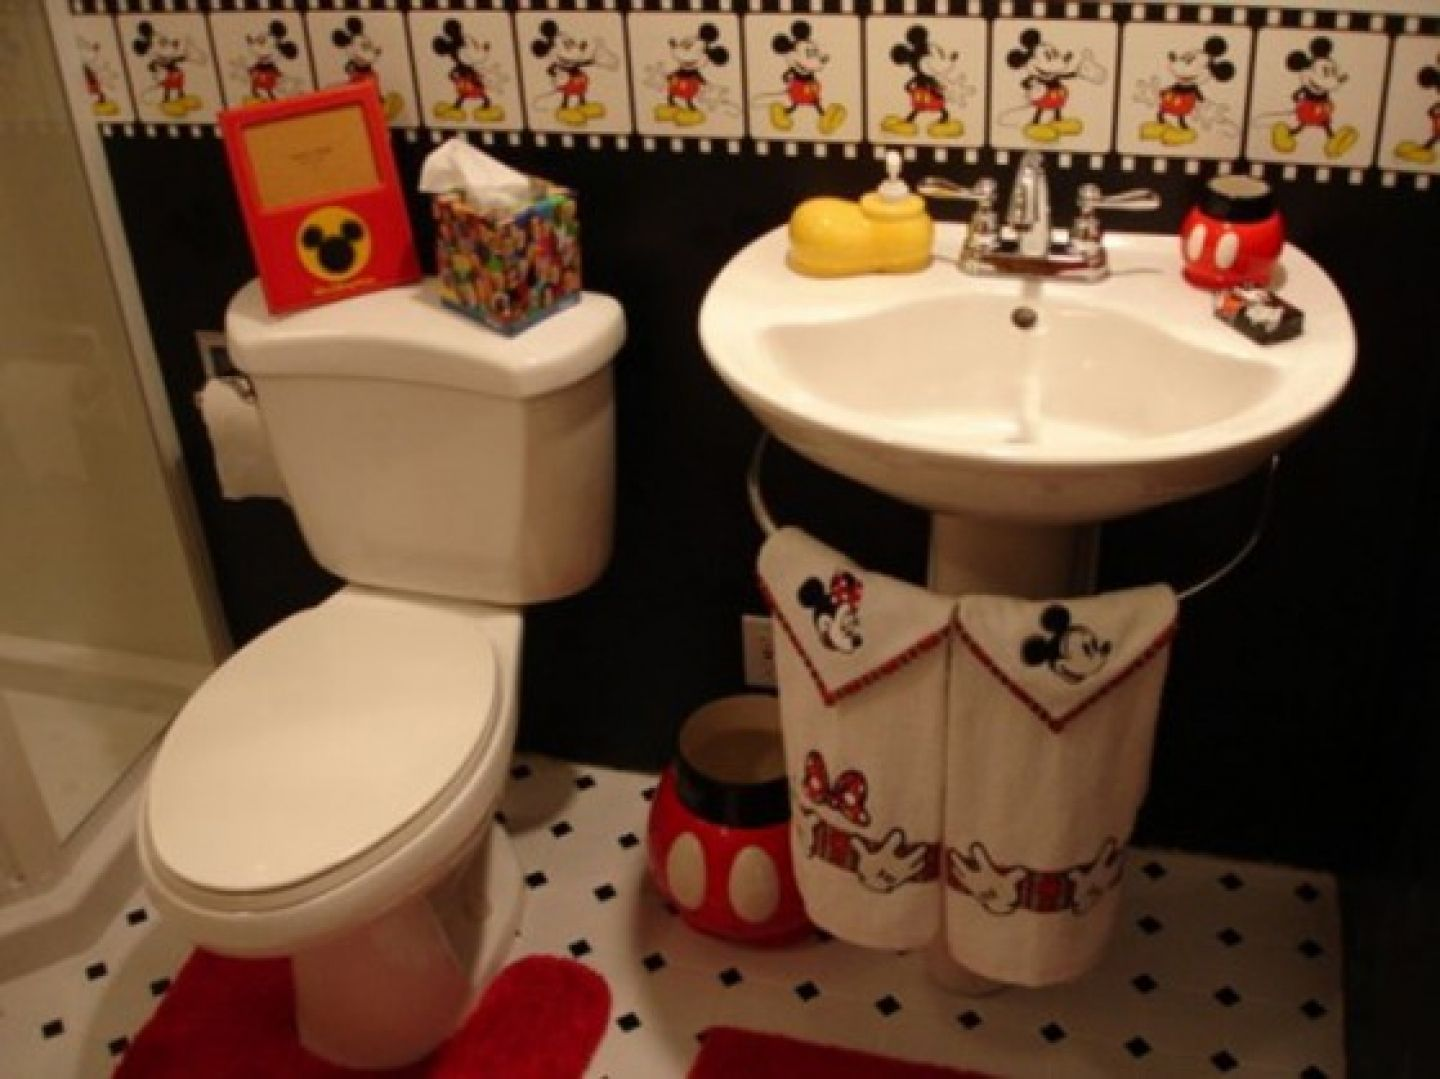 Outhouse Bathroom Decorating Ideas Design for Fun Bathroom Ideas